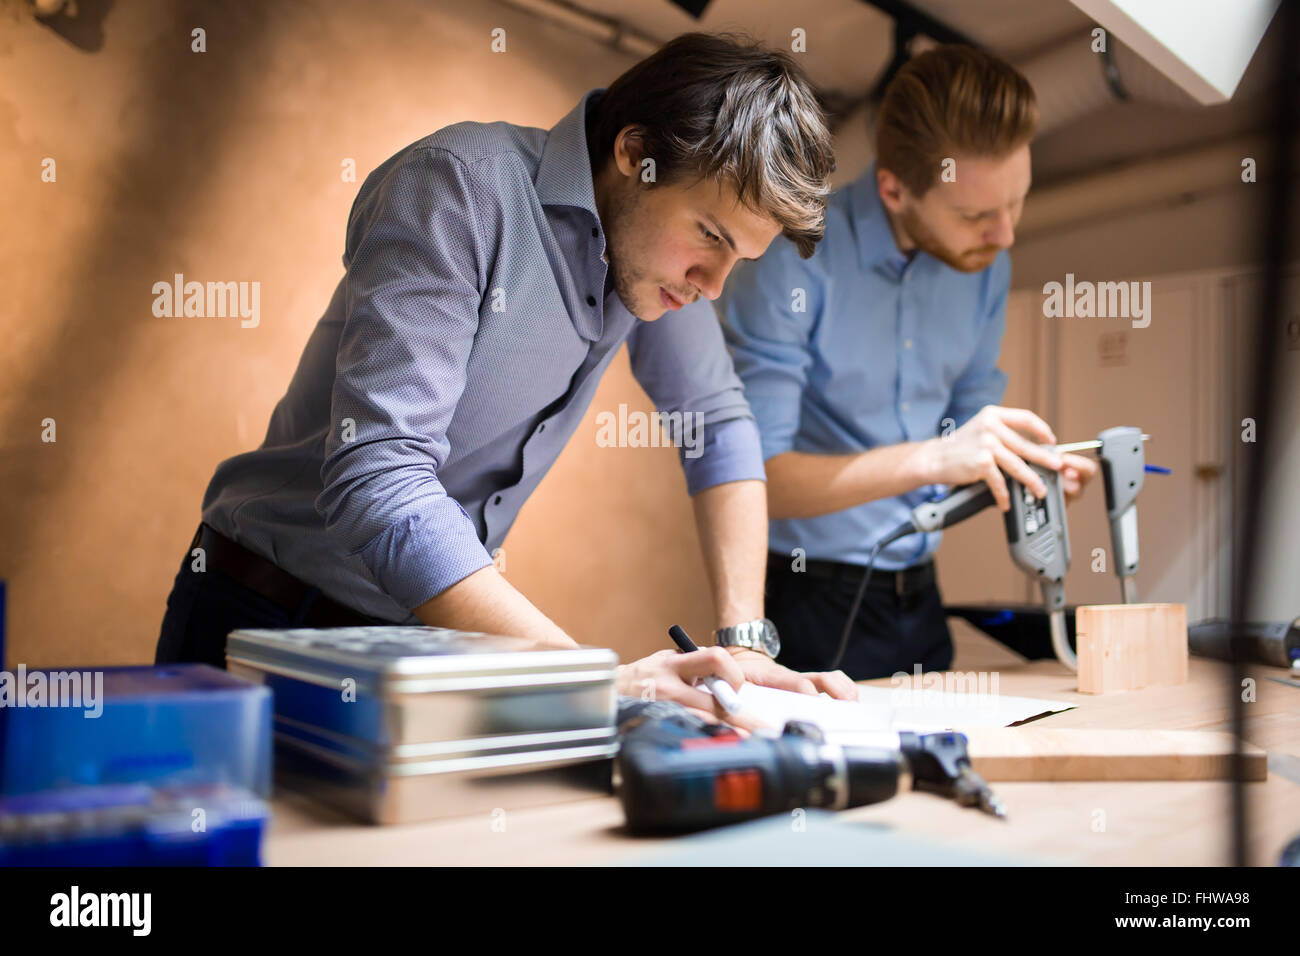 Industrial planning in workshop by creative people - Stock Image